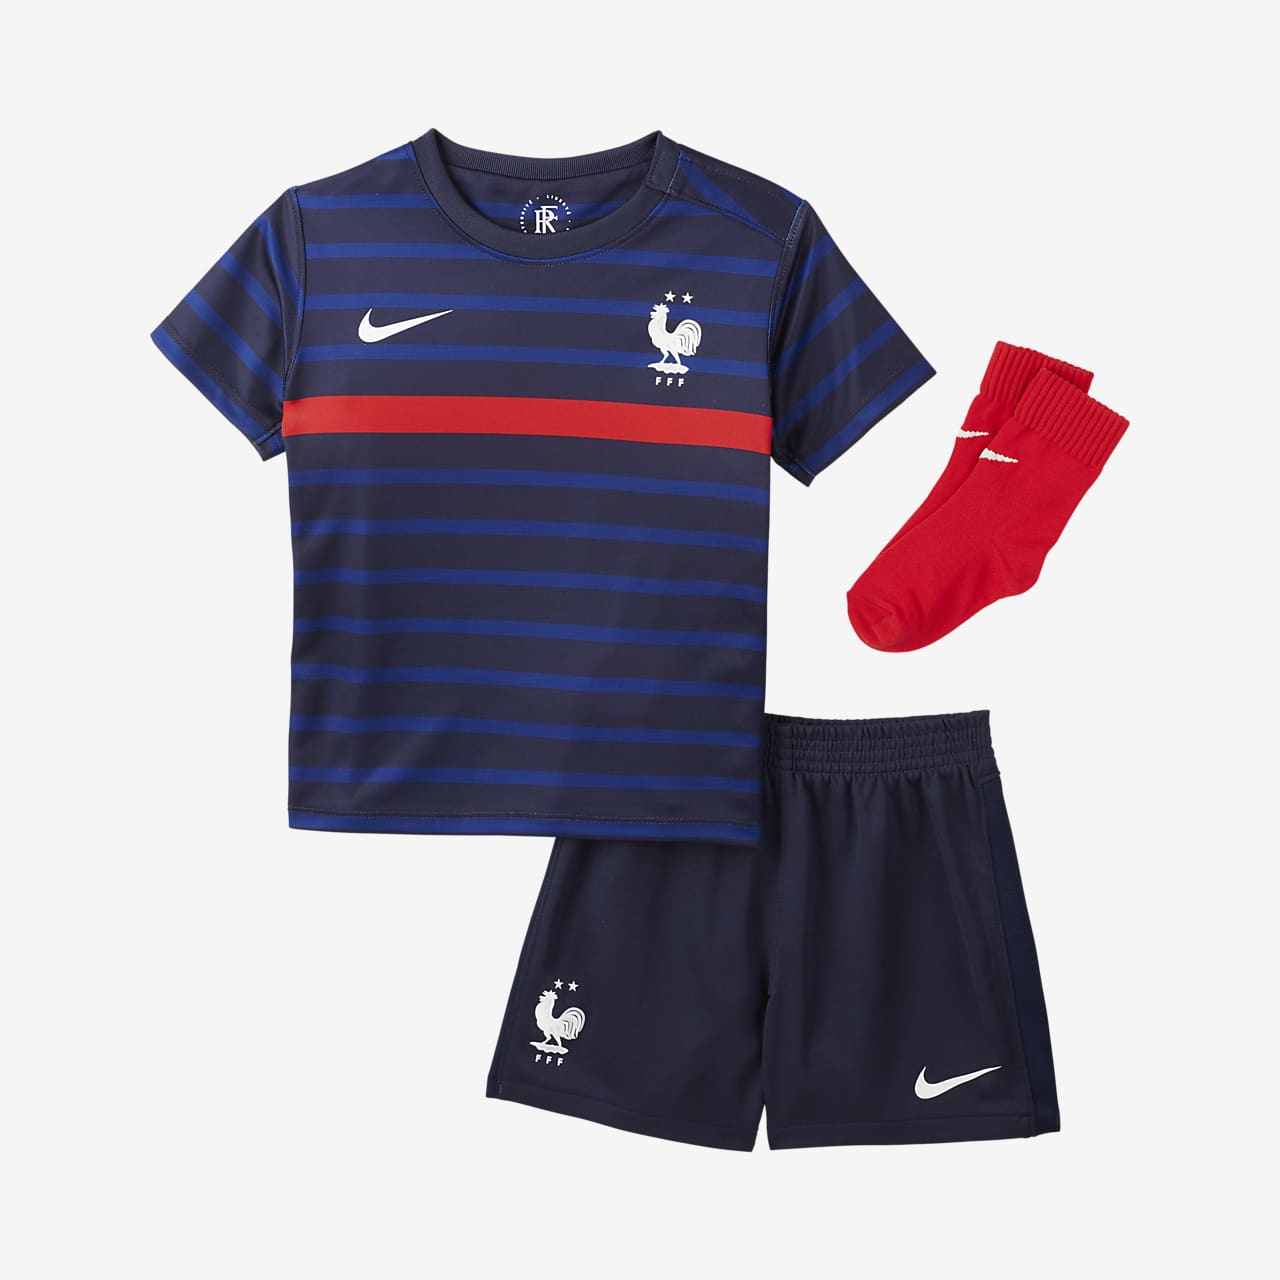 FFF 2020 Home Baby and Toddler Football Kit